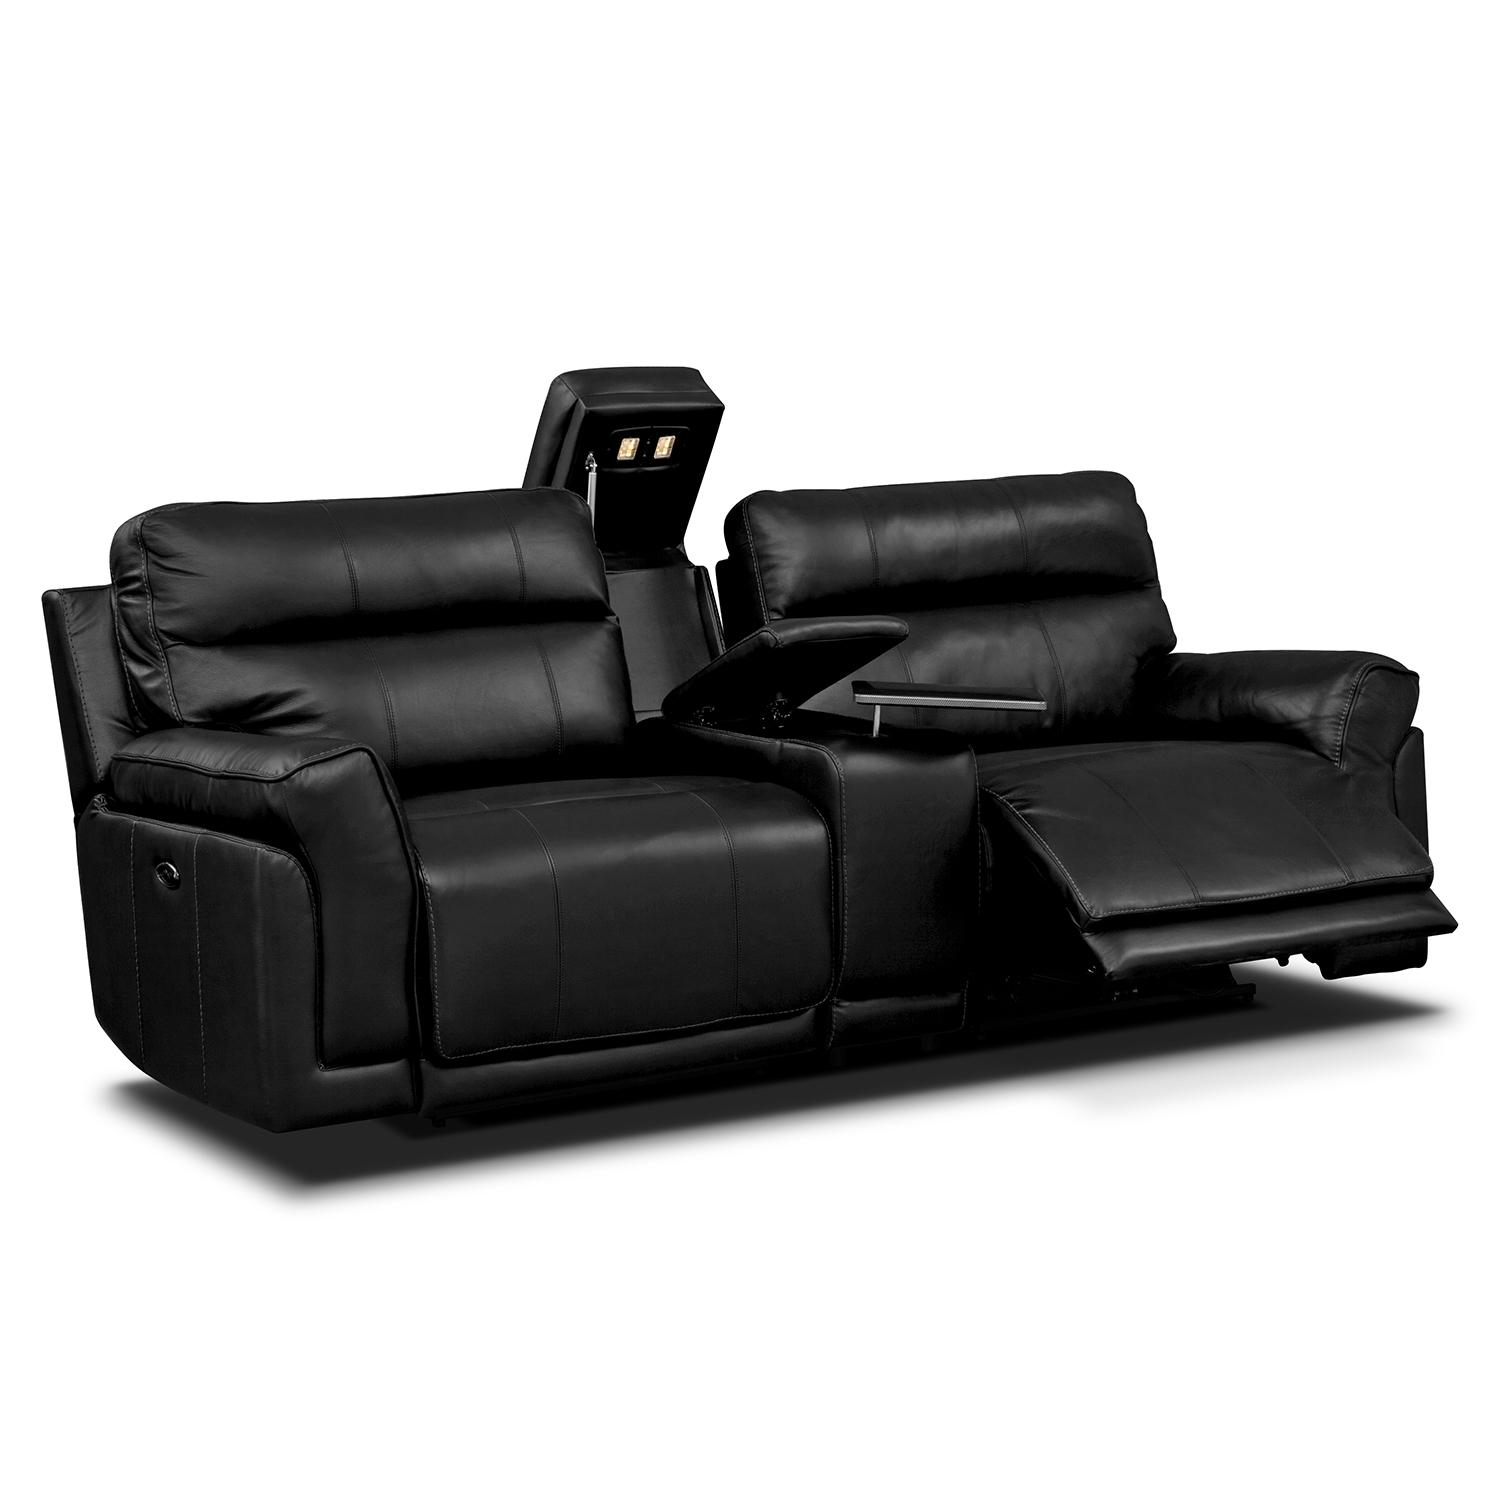 New Double Recliner Sofa With Console 17 Sofas And Couches Set For Sofas With Console (View 2 of 20)